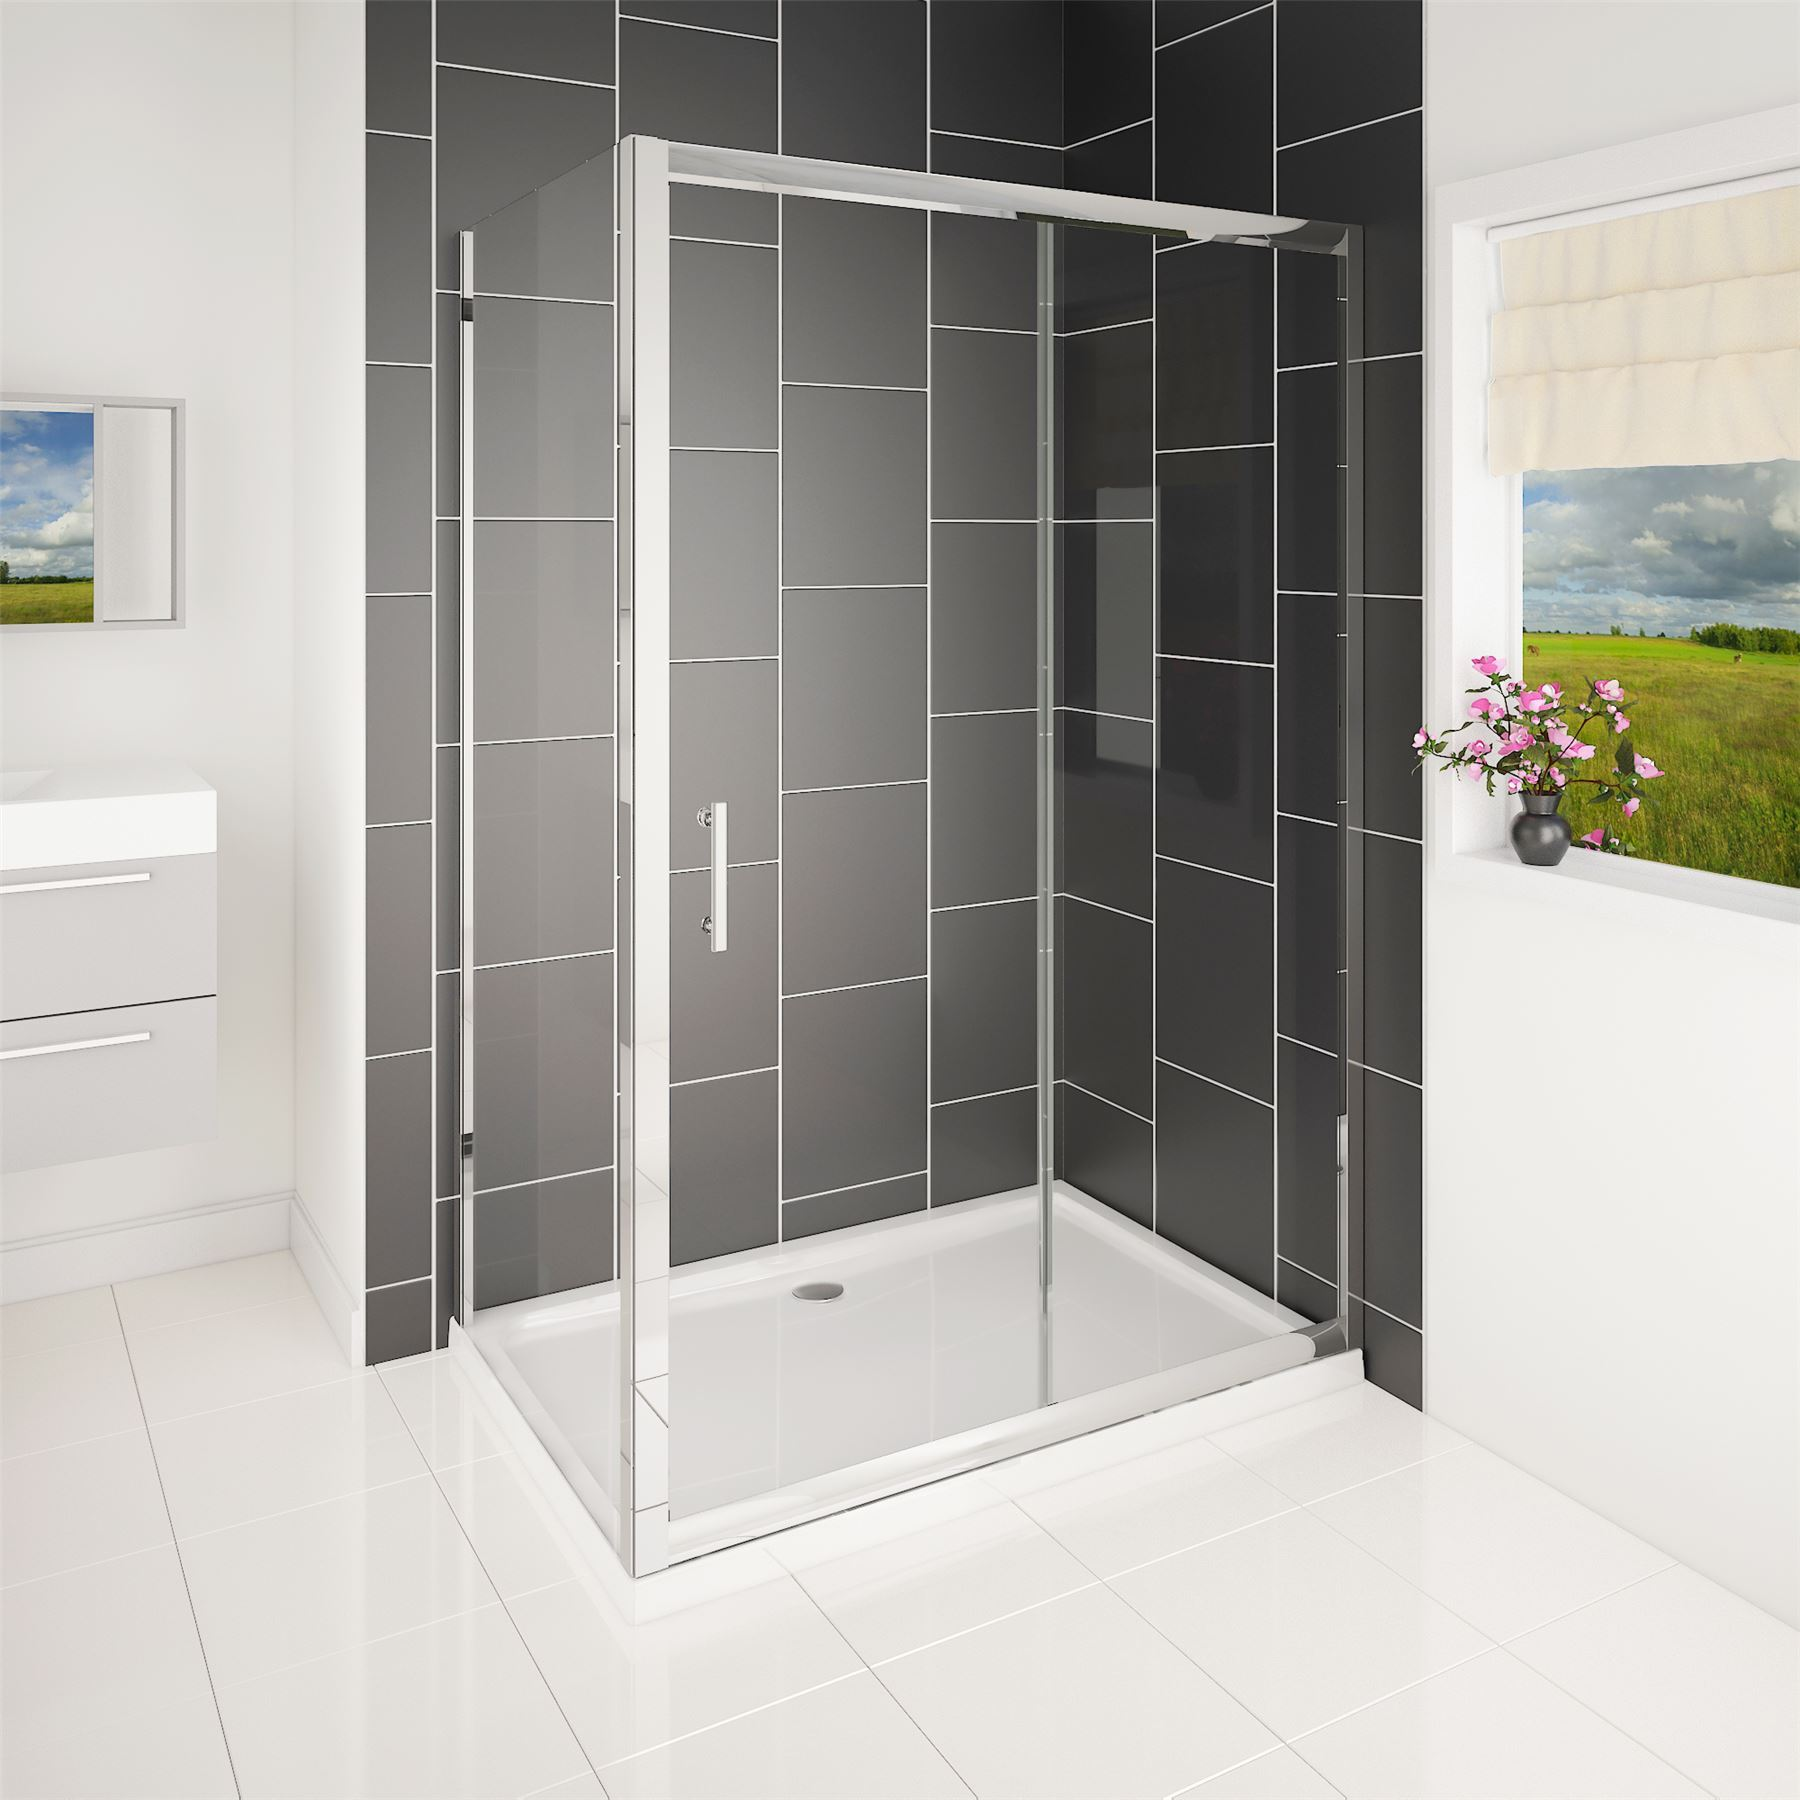 Easy Walk in Glass Single Chrome Sliding Door Shower Enclosure Cubicle with Tray